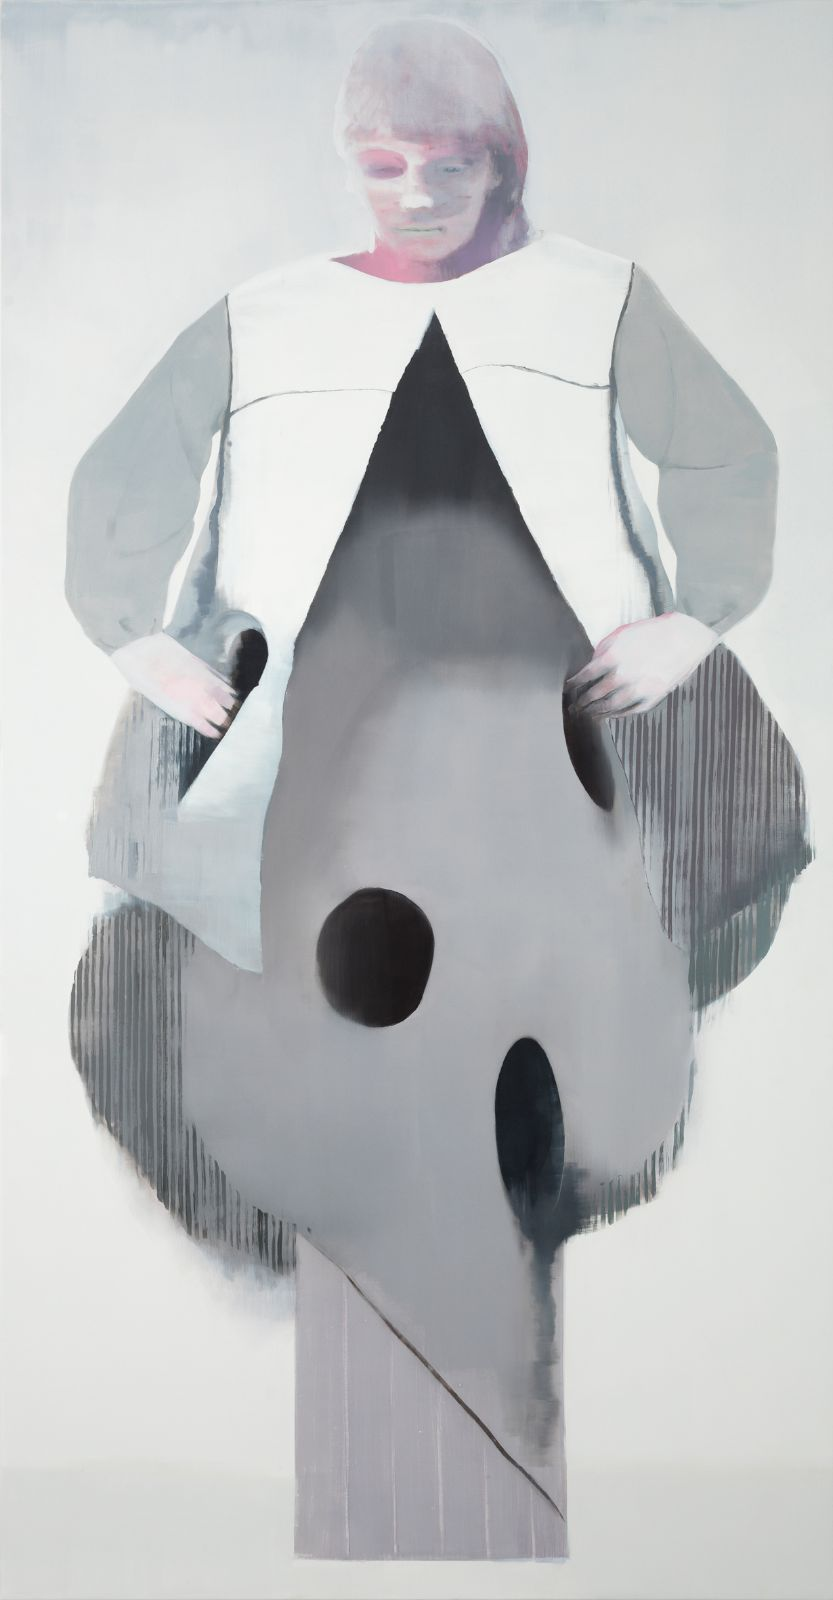 Mole Fingers, 2012, oil on canvas over panel, 231 x 120,5 cm